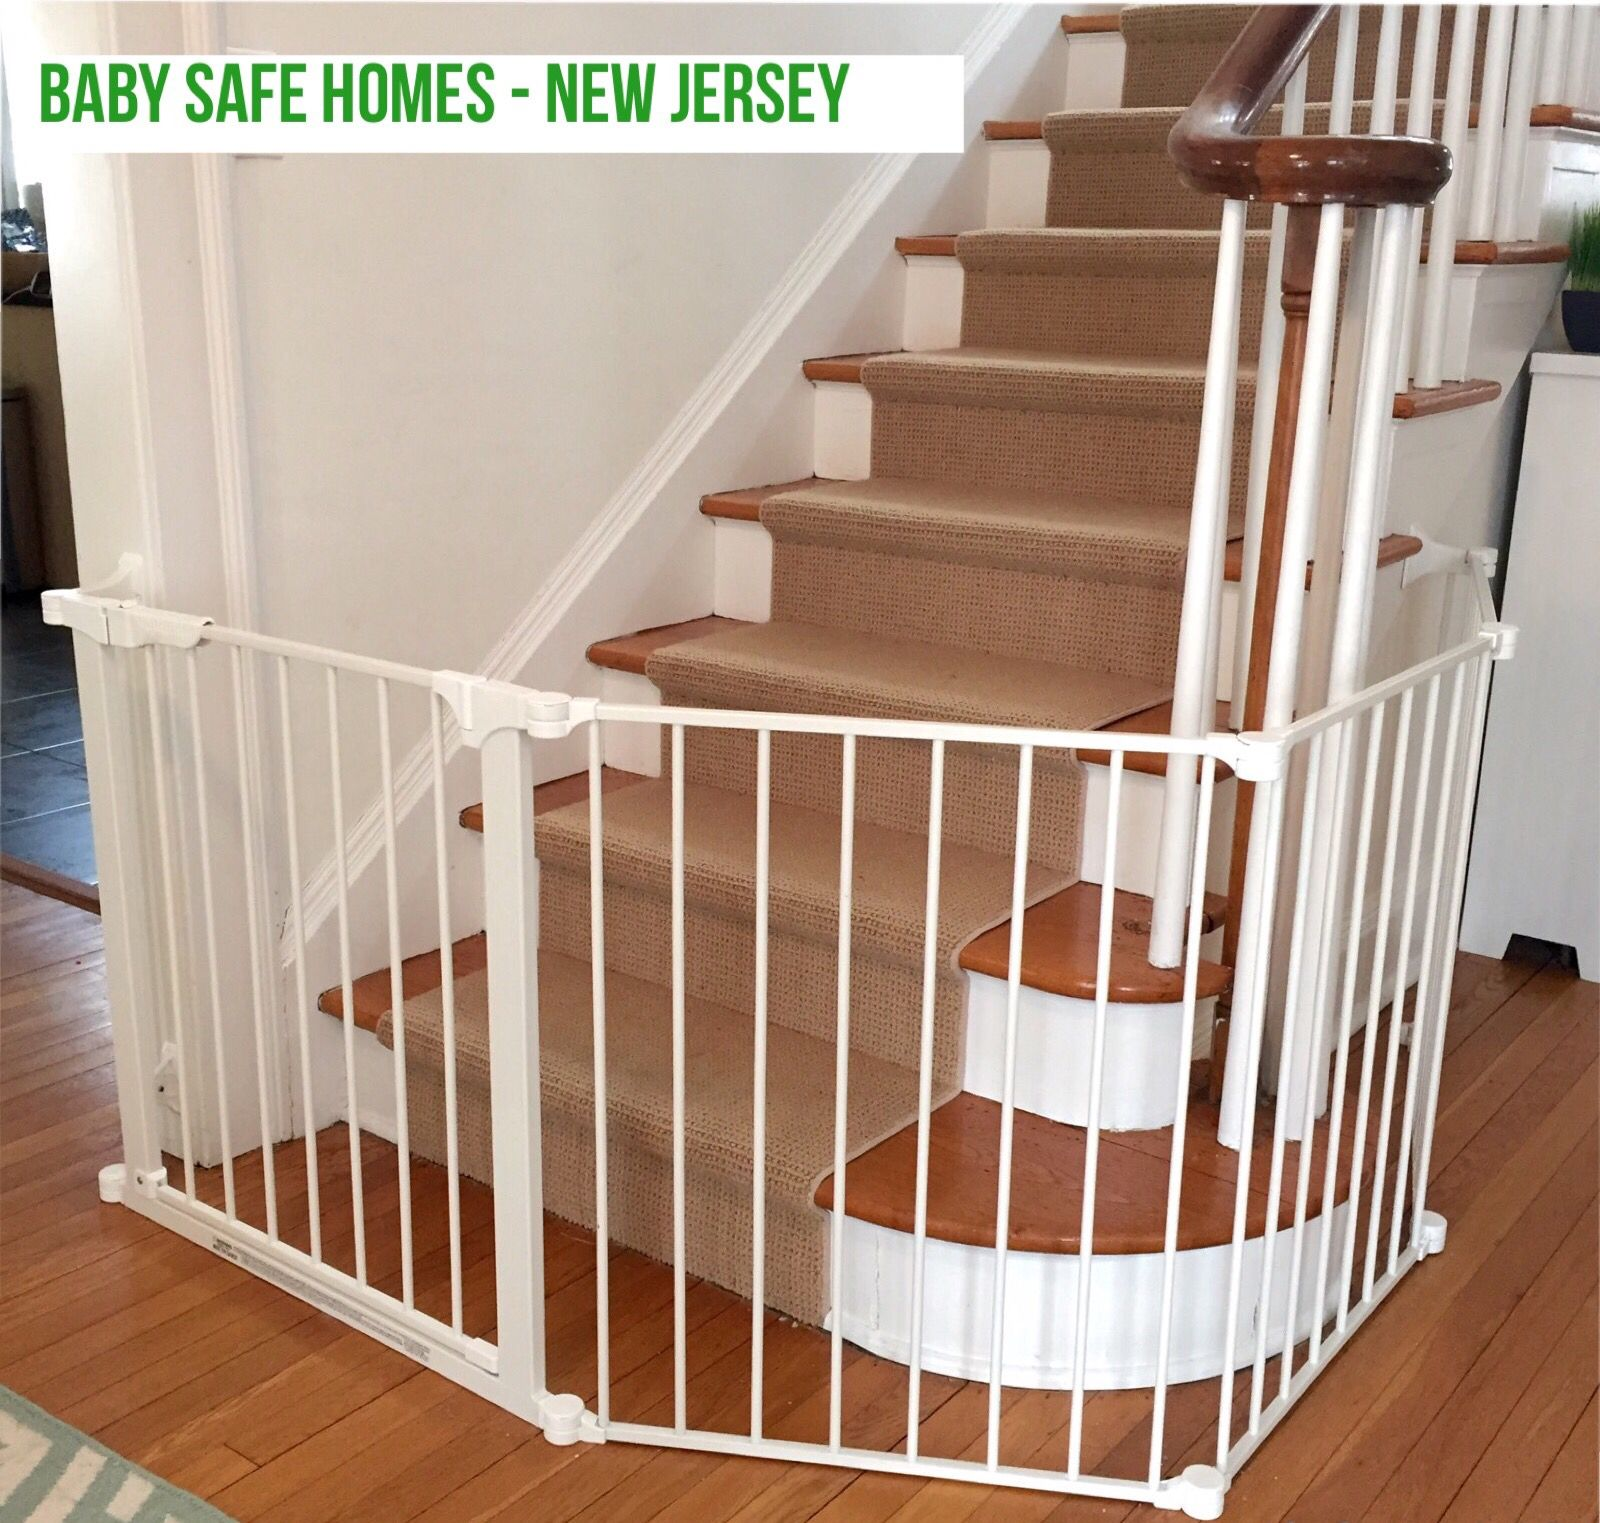 In This Maplewood Home We Installed A Safety Gate That Protects The Staircase From Little One S Entering But We Also Baby Gates Baby Gate For Stairs Kids Gate